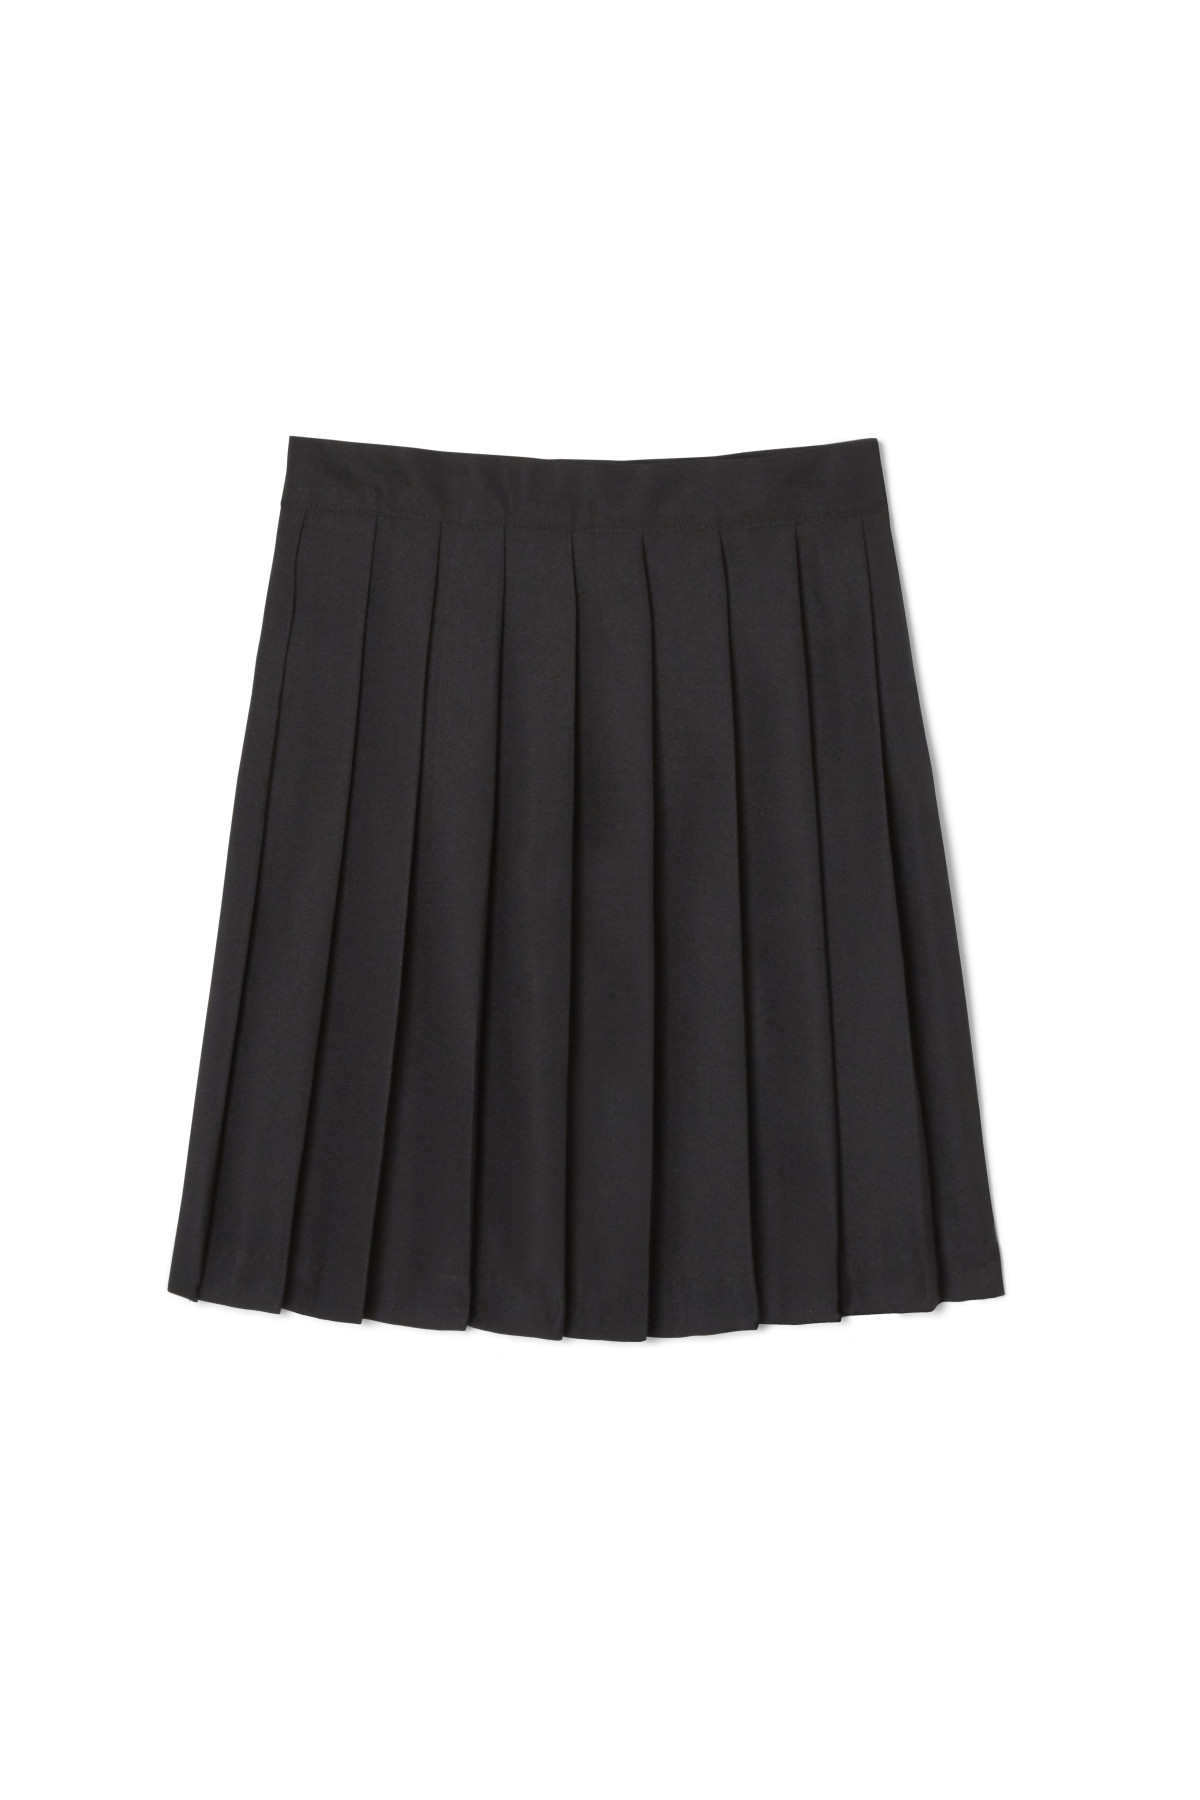 c435edb38e Skirts & Scooters - Girls School Uniforms | French Toast - French Toast